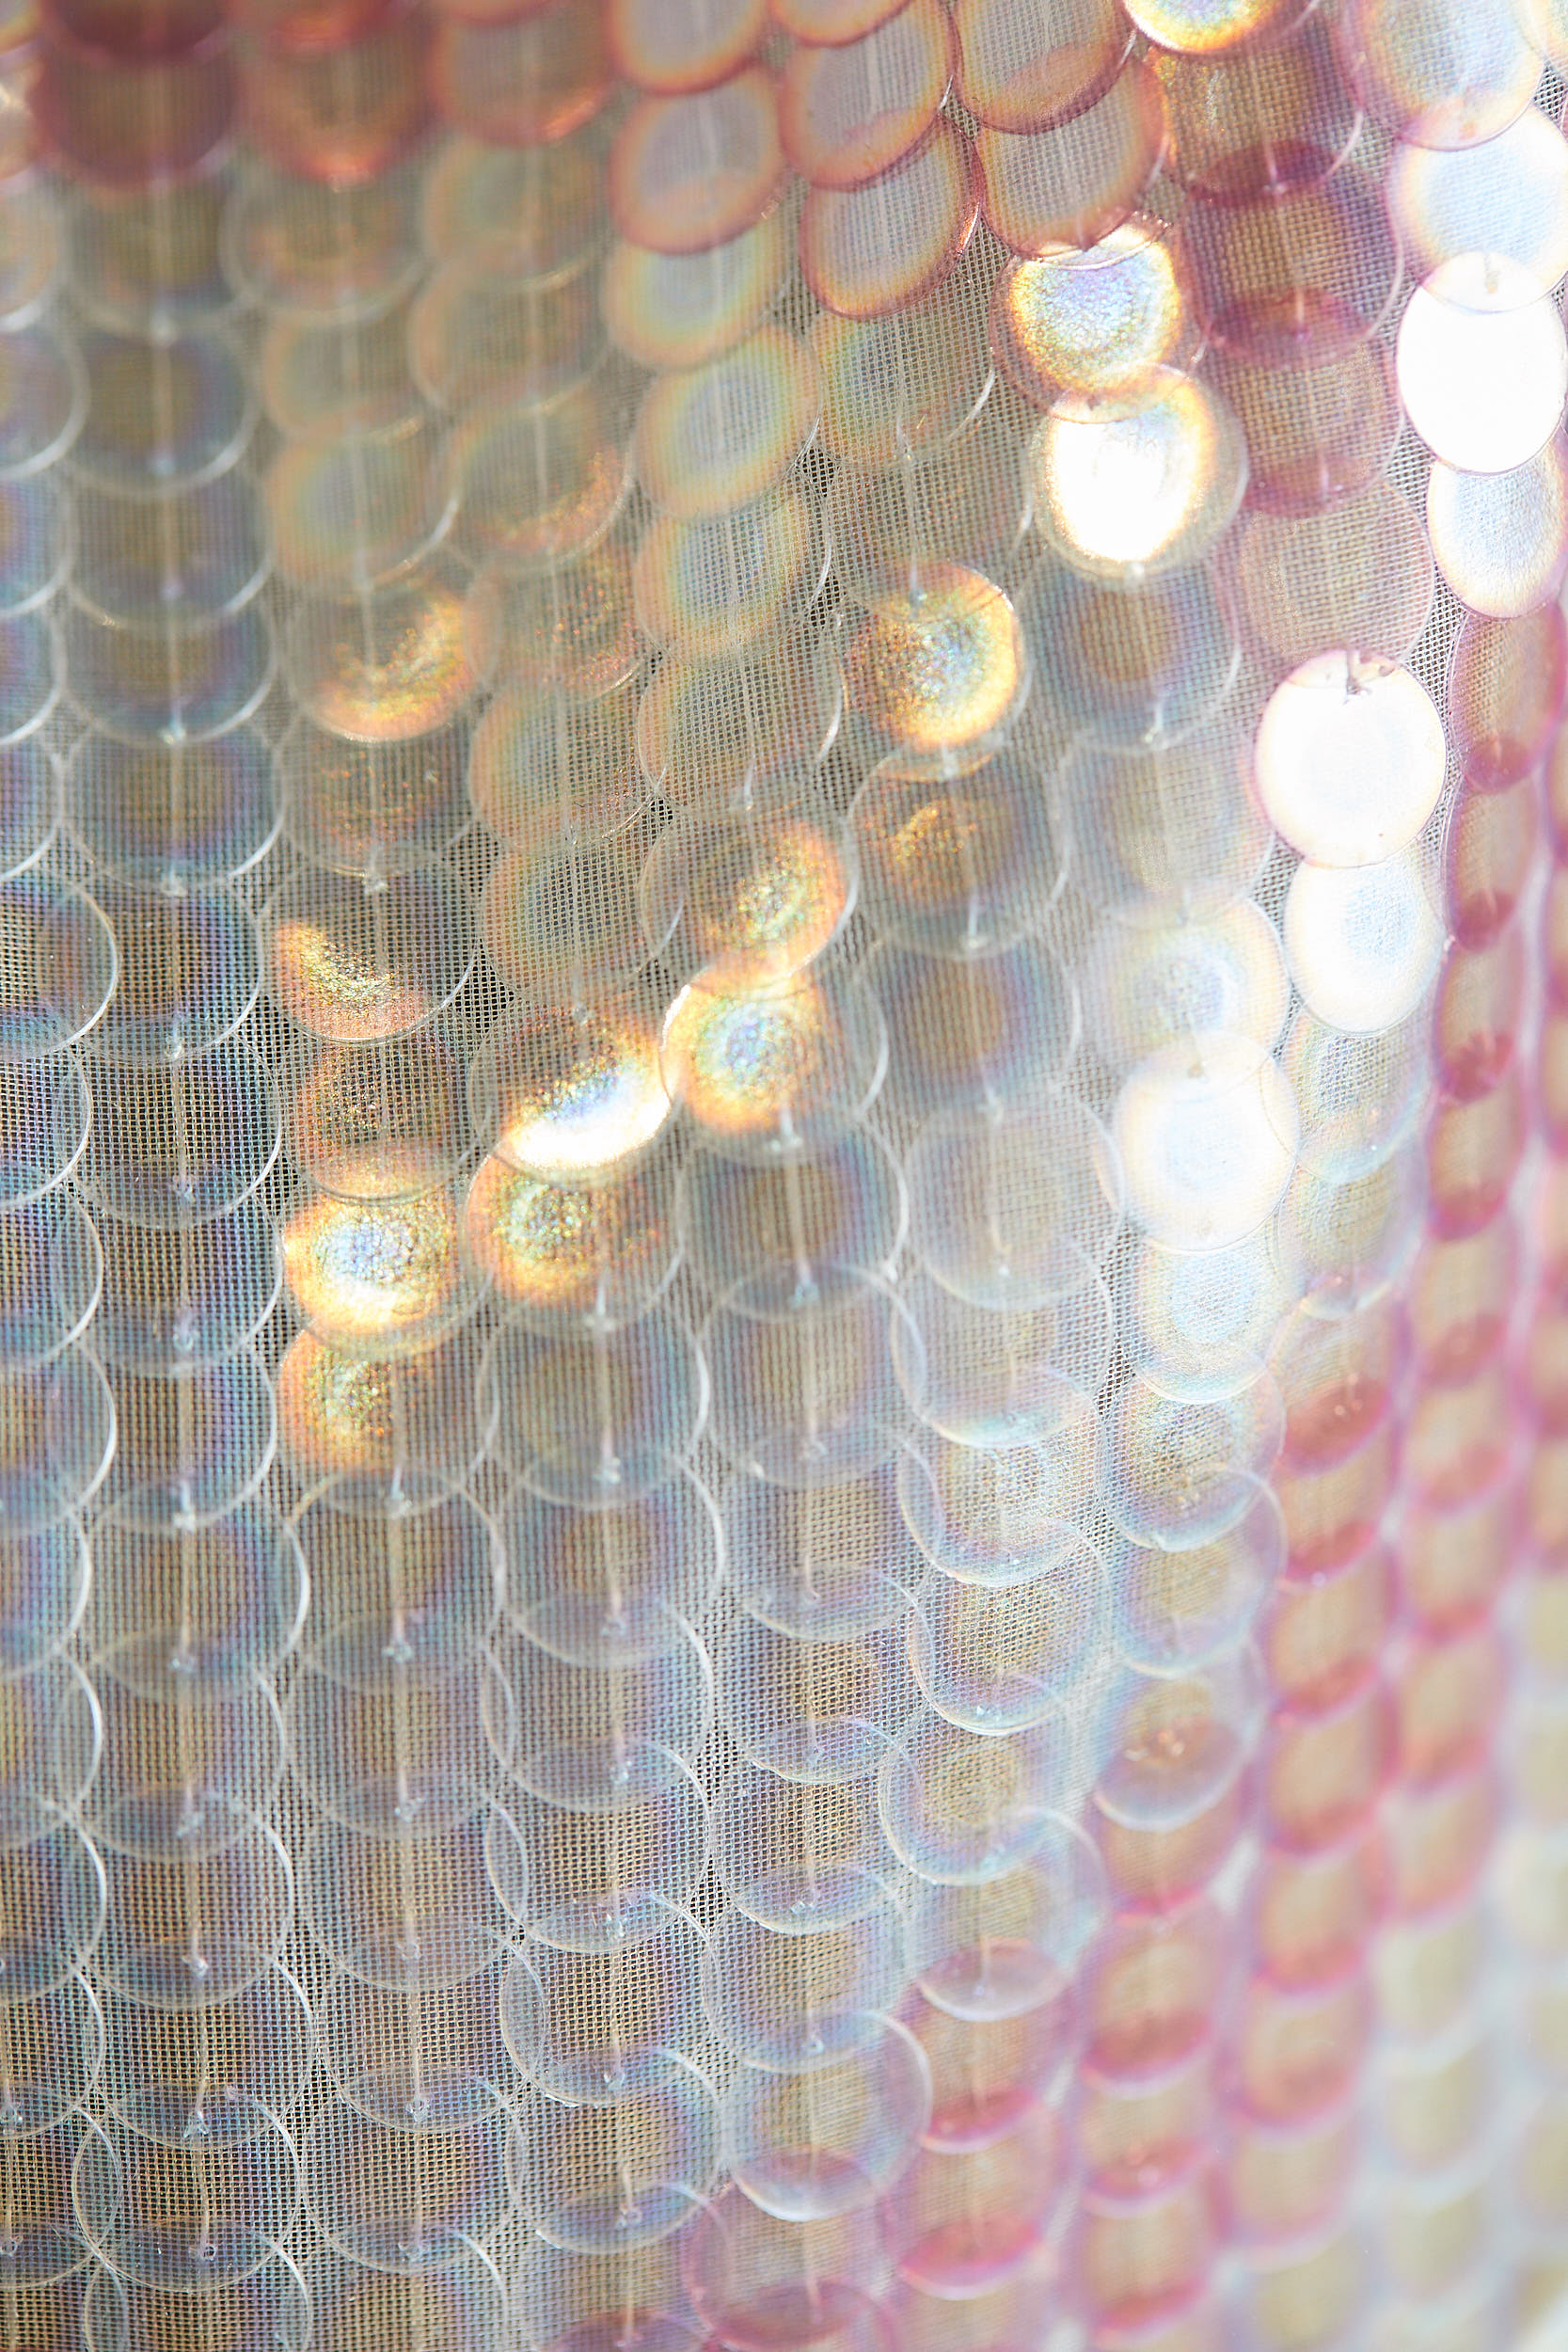 Sequins embroidered onto hanging textile